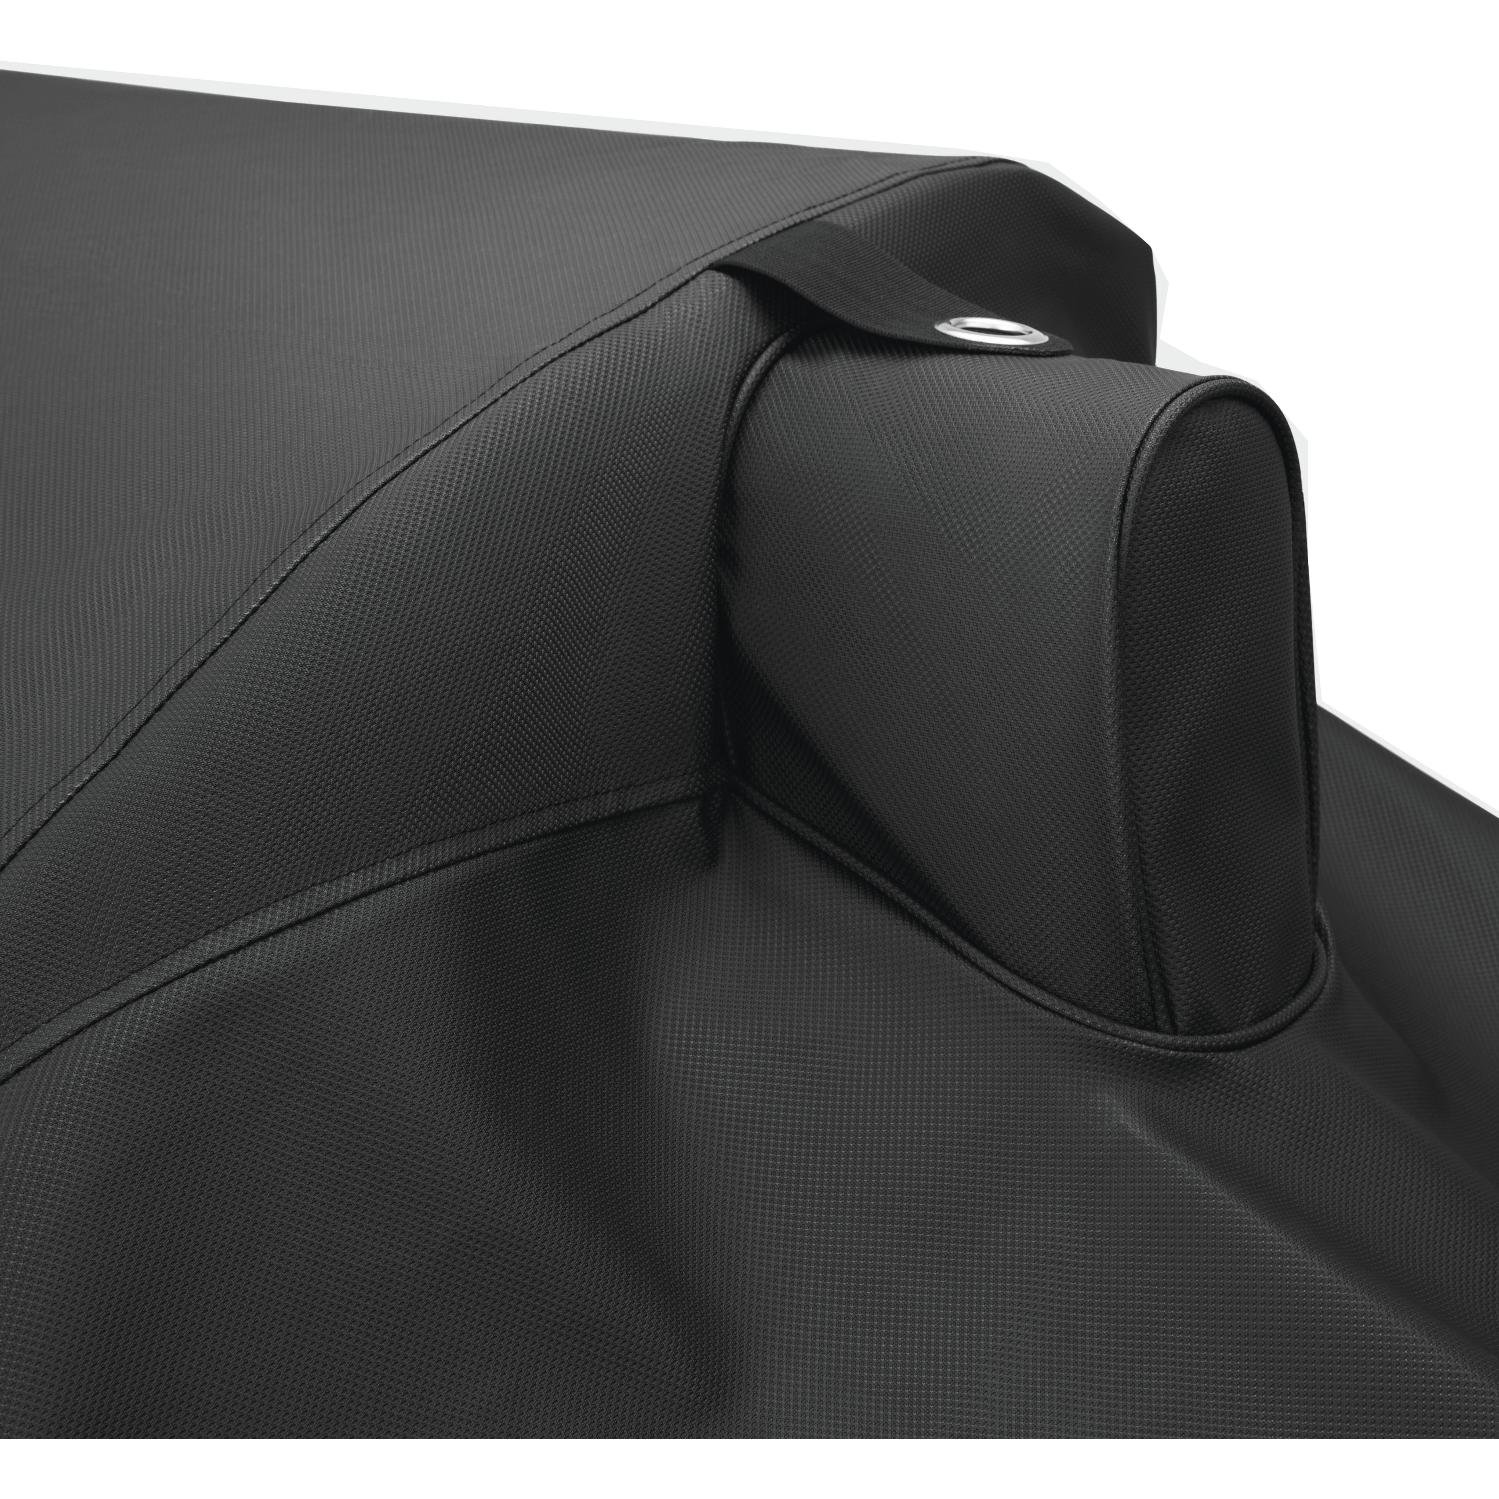 DCS Built-In Vinyl Cover for 36-Inch Grill (71185) (ACBI-36)